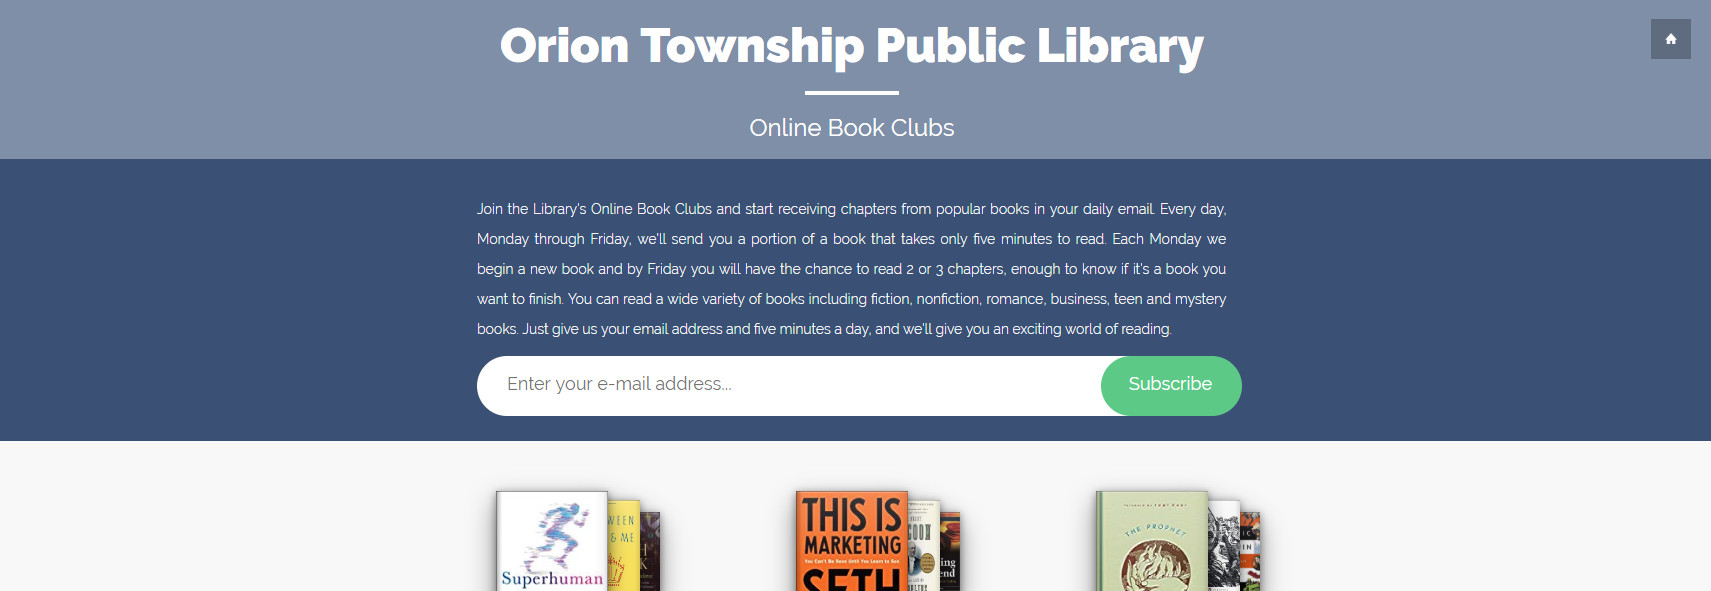 Online Book Clubs - Screenshot